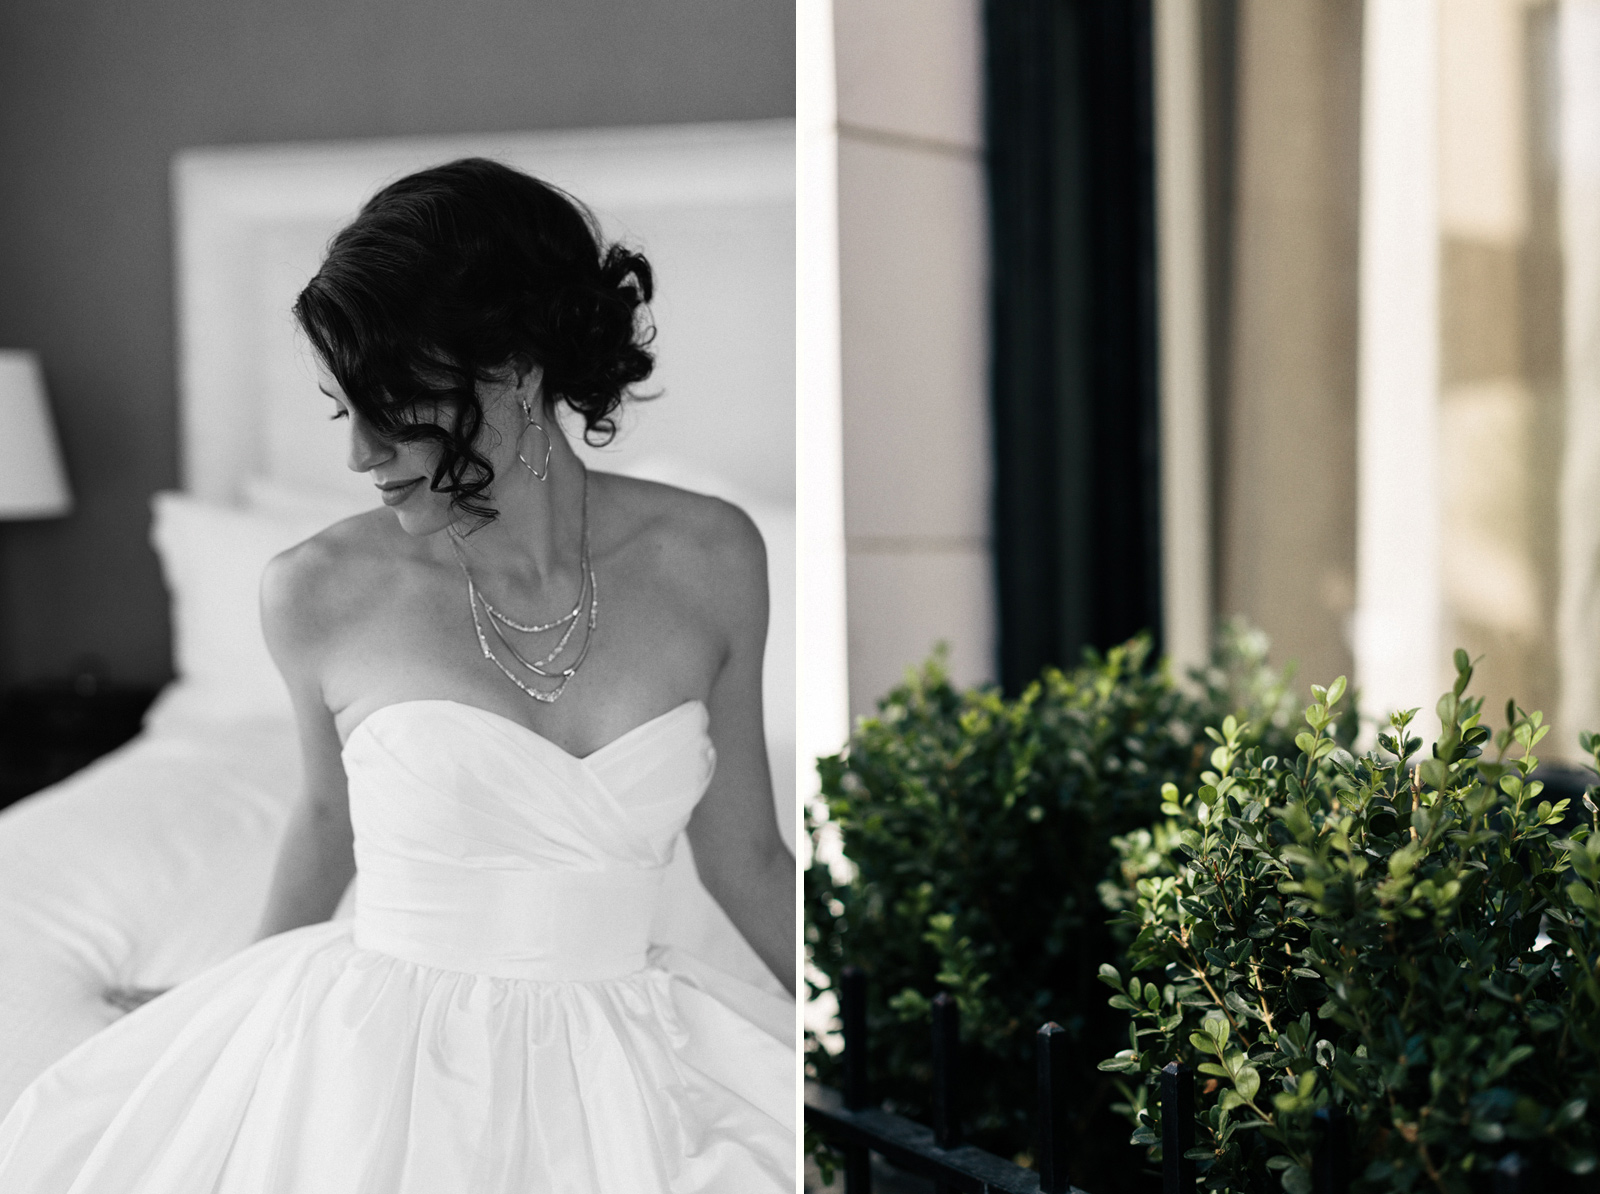 Coo-Hills-Wedding-Photographer-Downtown-Denver-Rebecc-and-Aaron-4.jpg